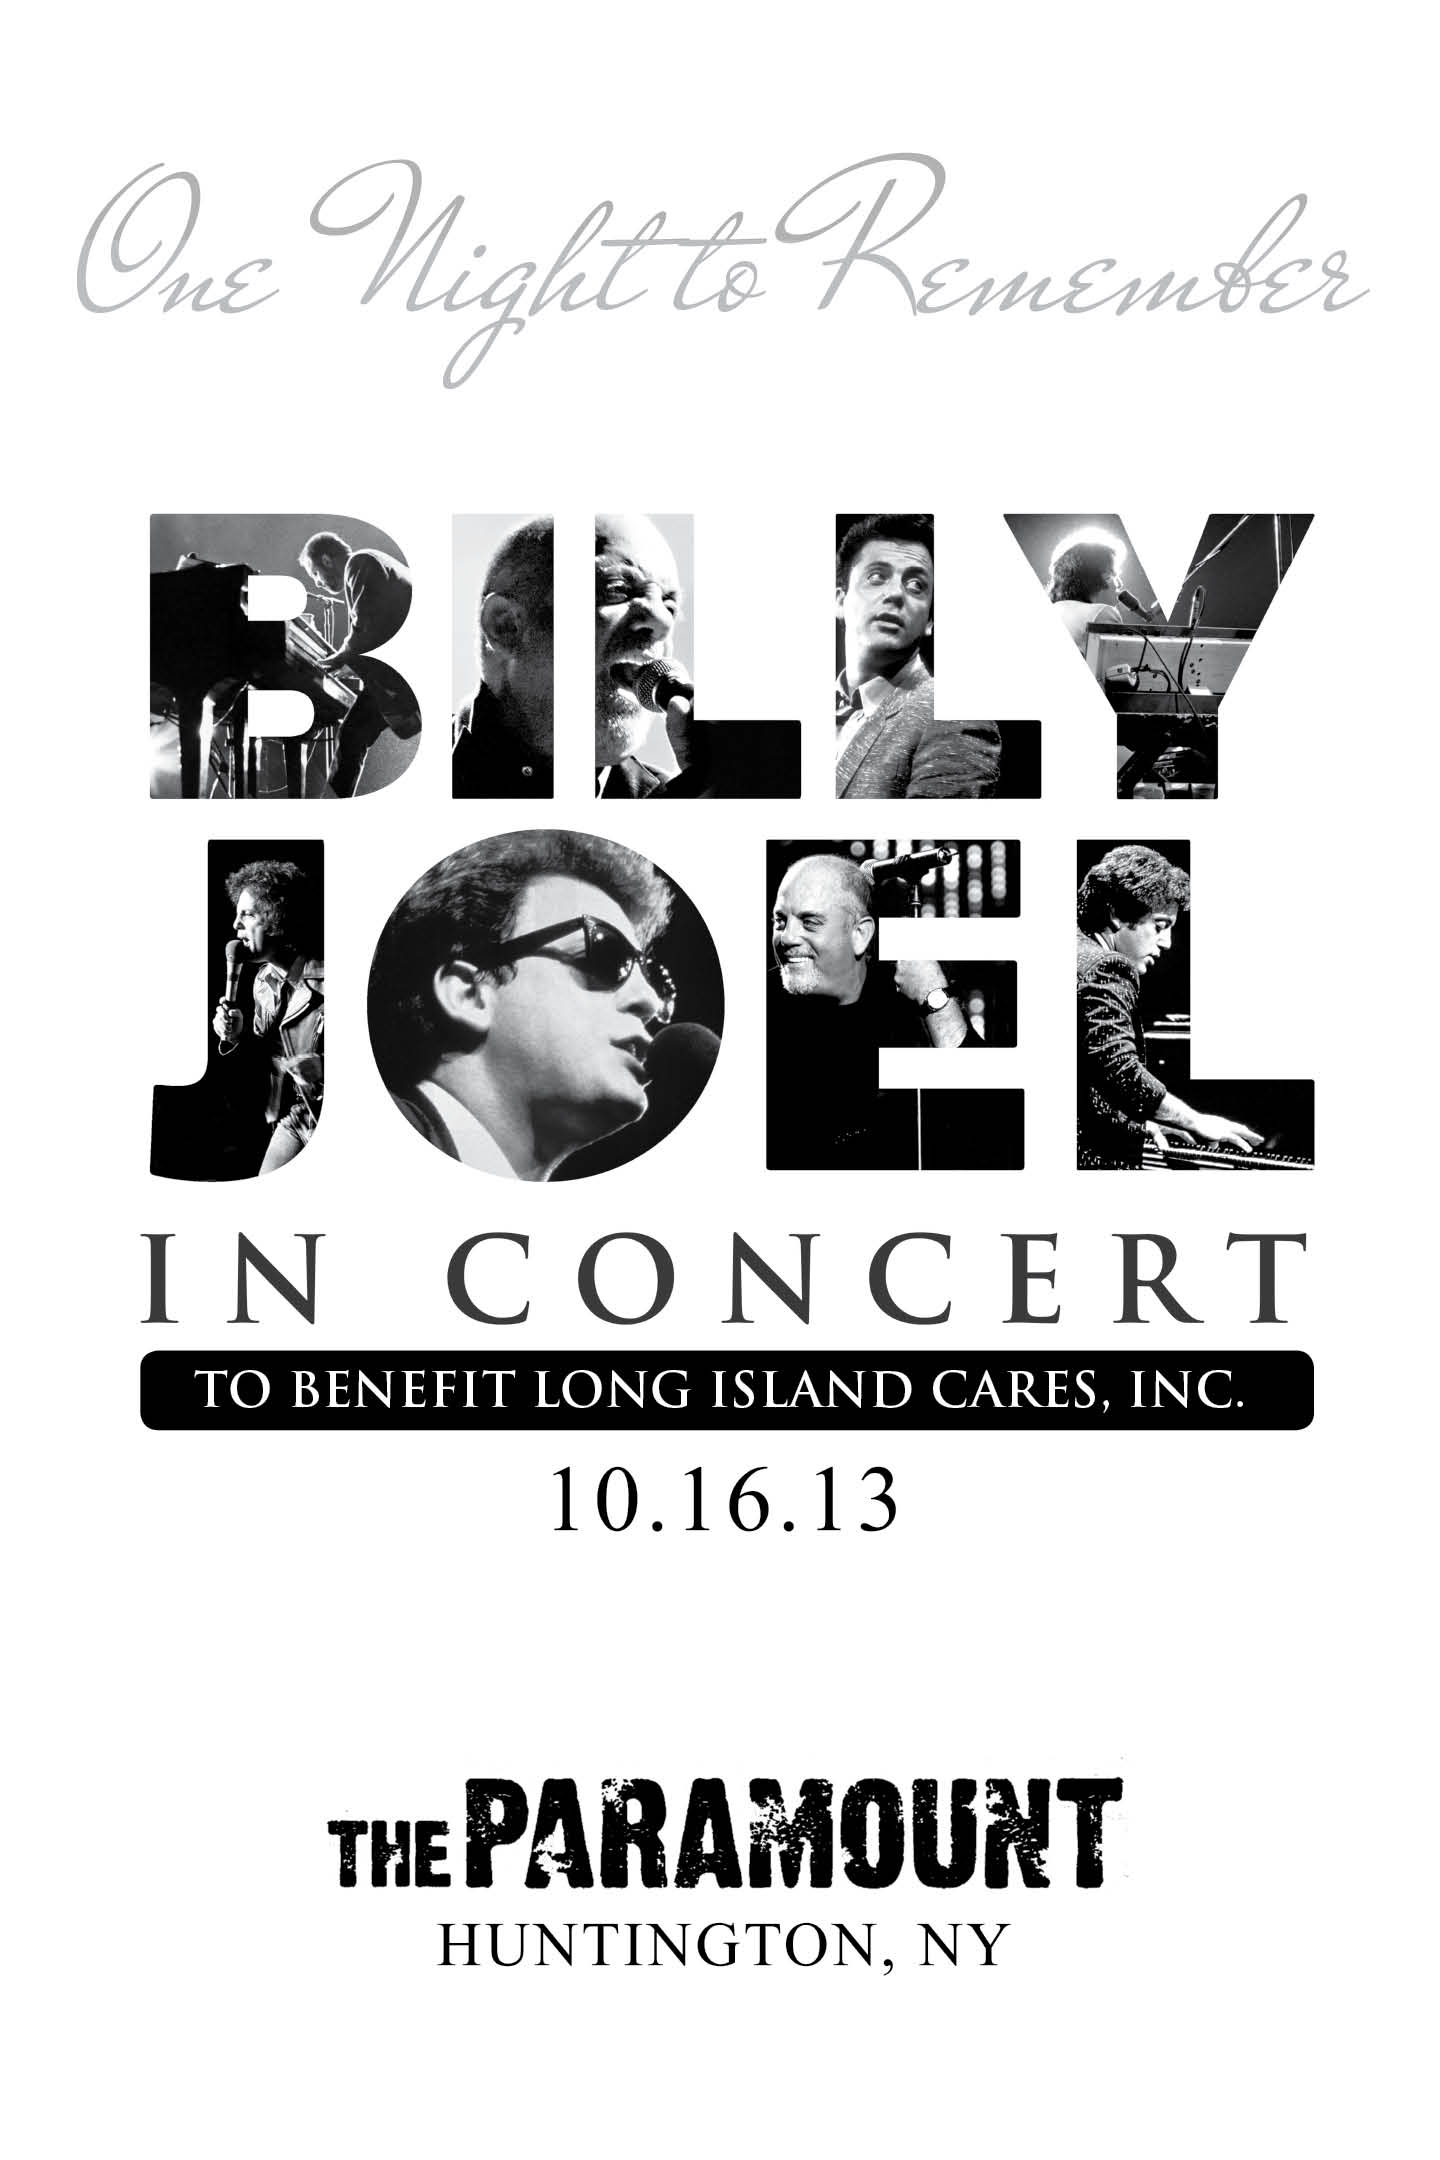 Billy Joel Signs Commemorative Posters of Concert at the